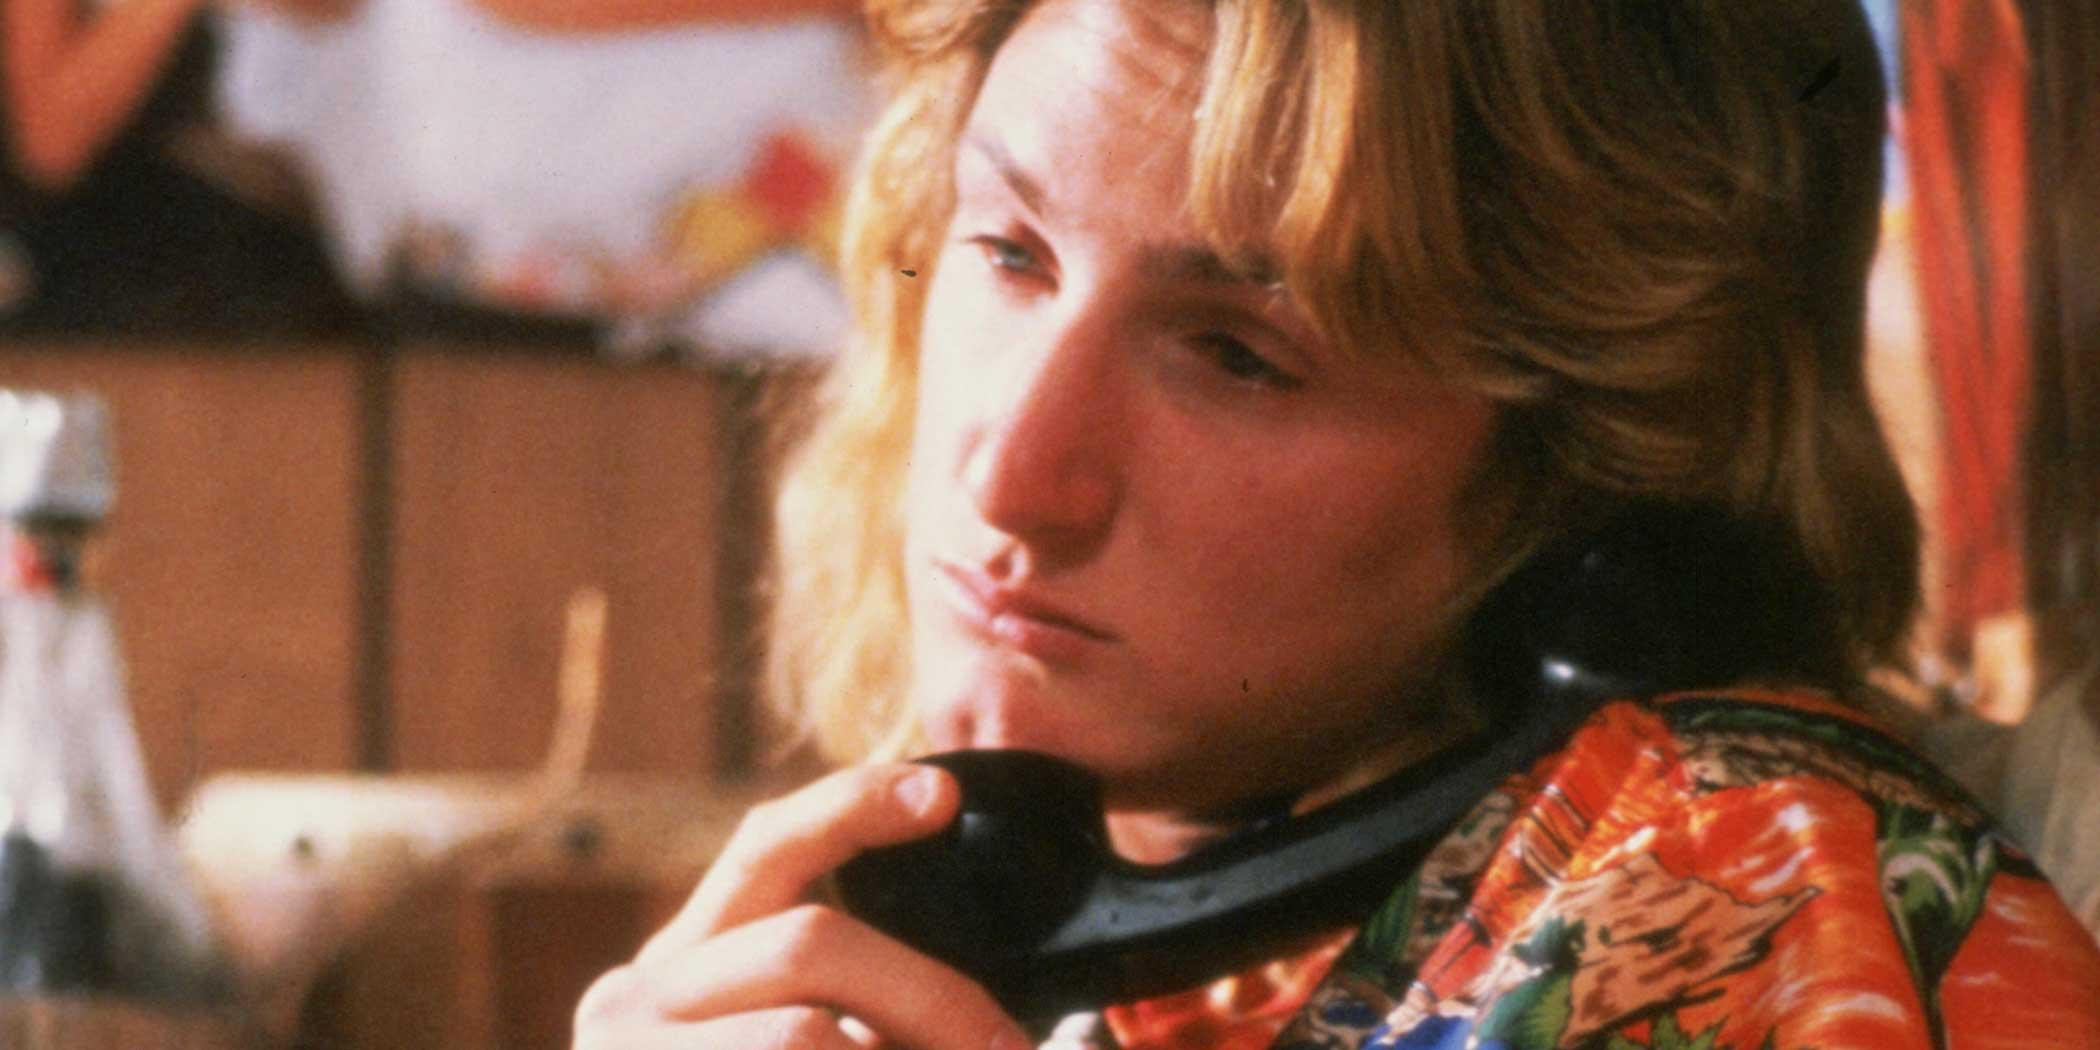 Penn stars in Fast Times at Ridgemont High. Photo: Universal Pictures Media Licensing